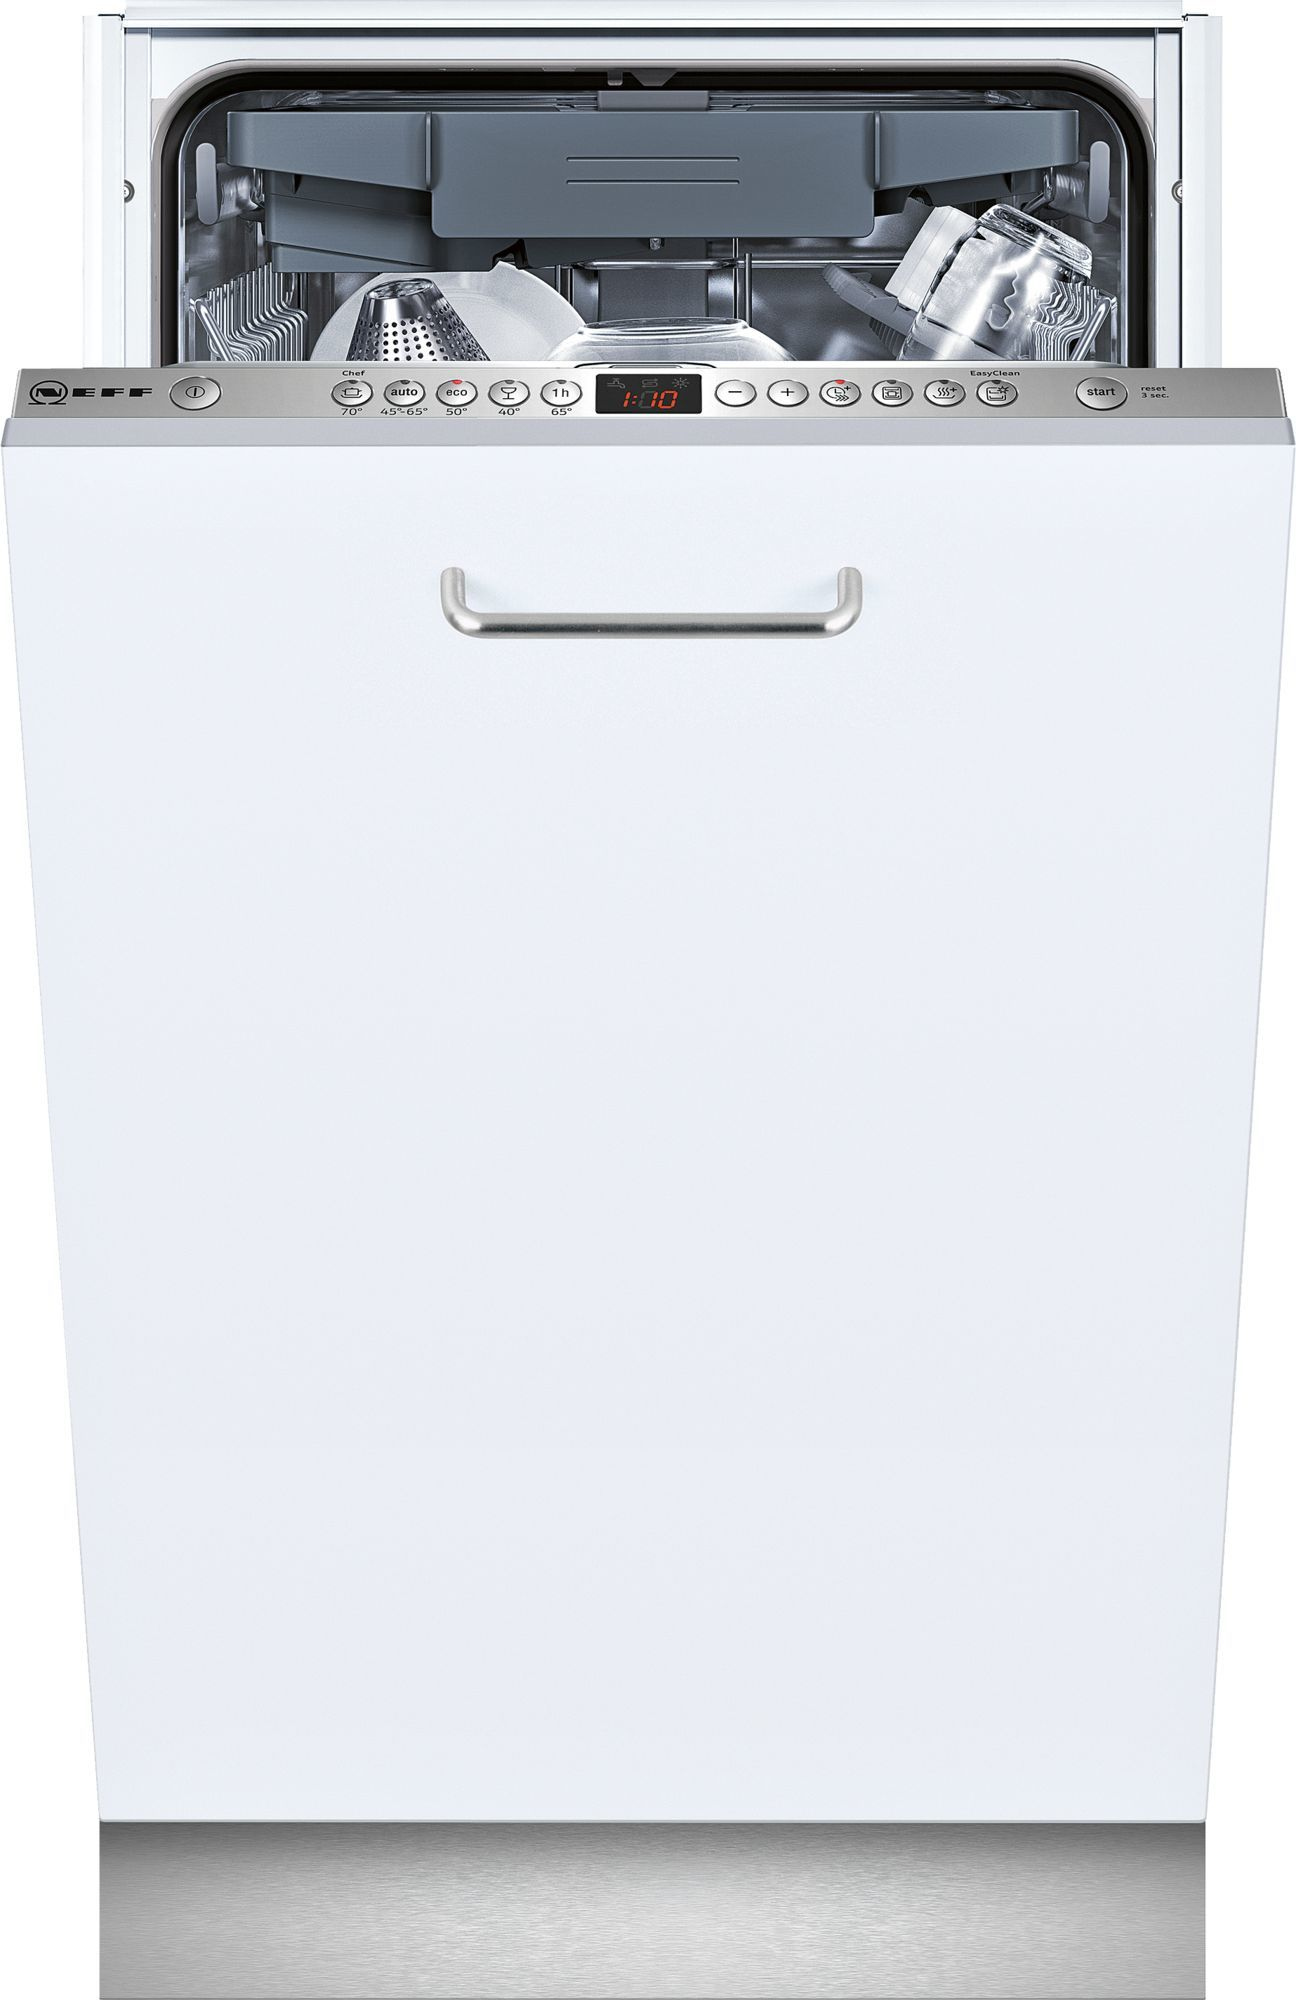 Photos 1: Neff Dishwasher cm. 45 - 10 covered total disappearance S583M50X0E